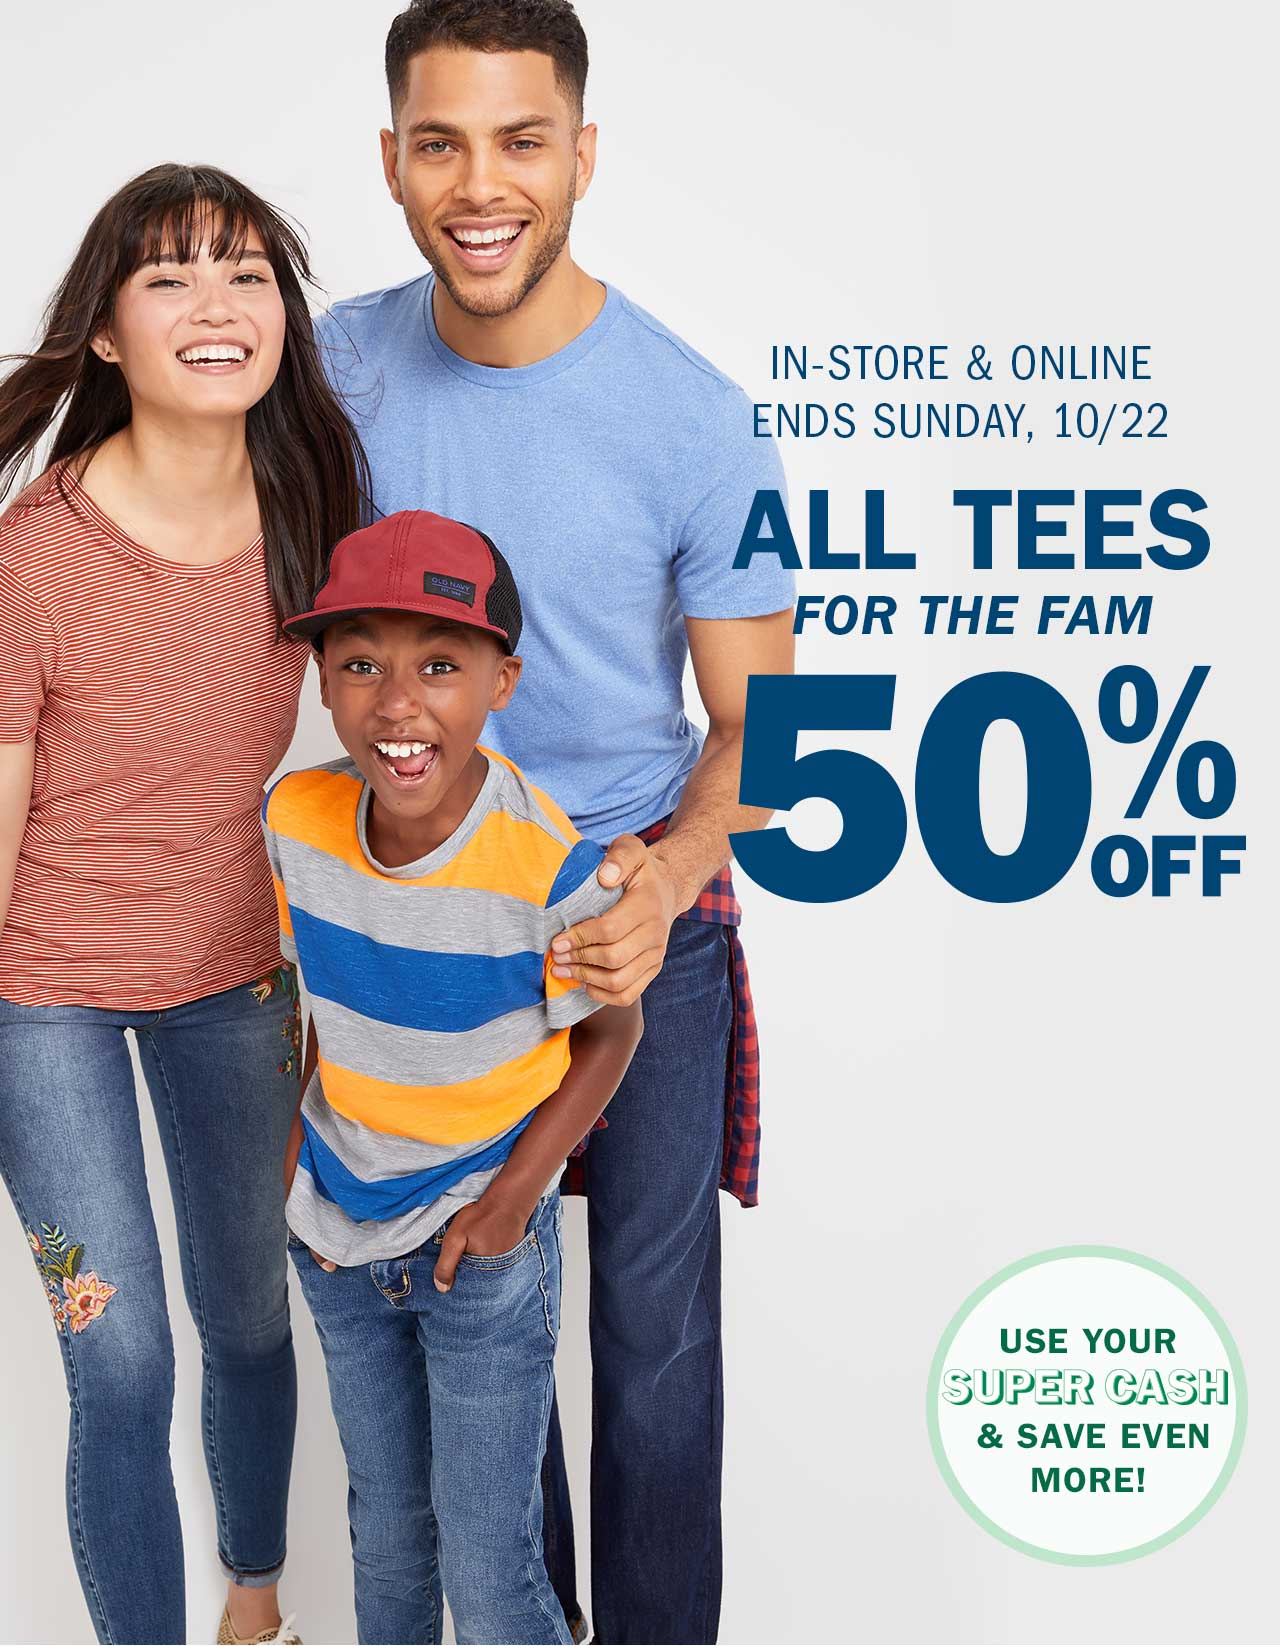 IN-STORE & ONLINE | ENDS SUNDAY, 10/22 | ALL TEES FOR THE FAM 50% OFF | USE YOUR SUPER CASH & SAVE EVEN MORE!